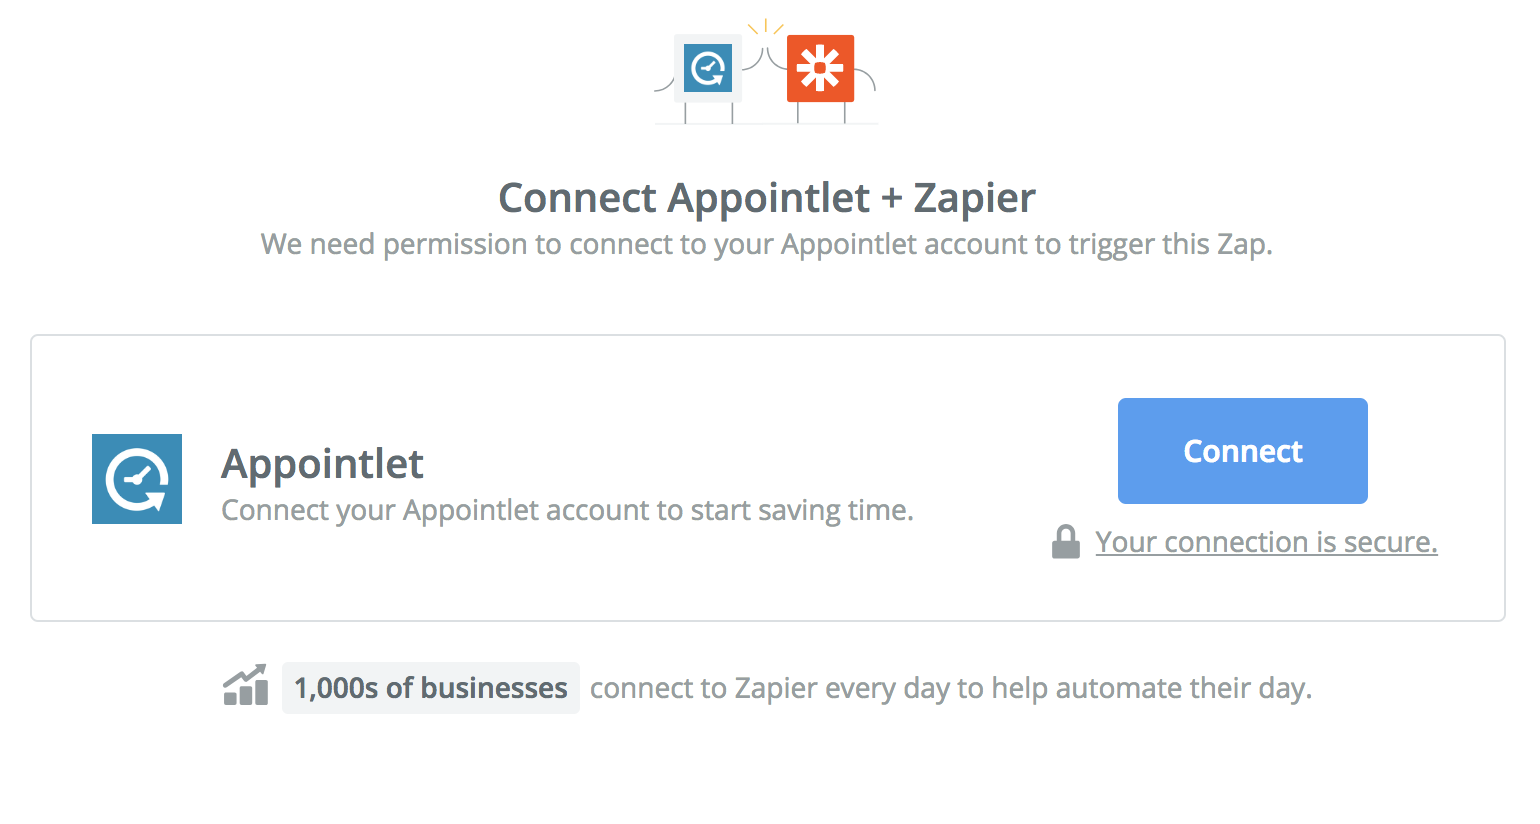 Connect your Appointlet account to Zapier